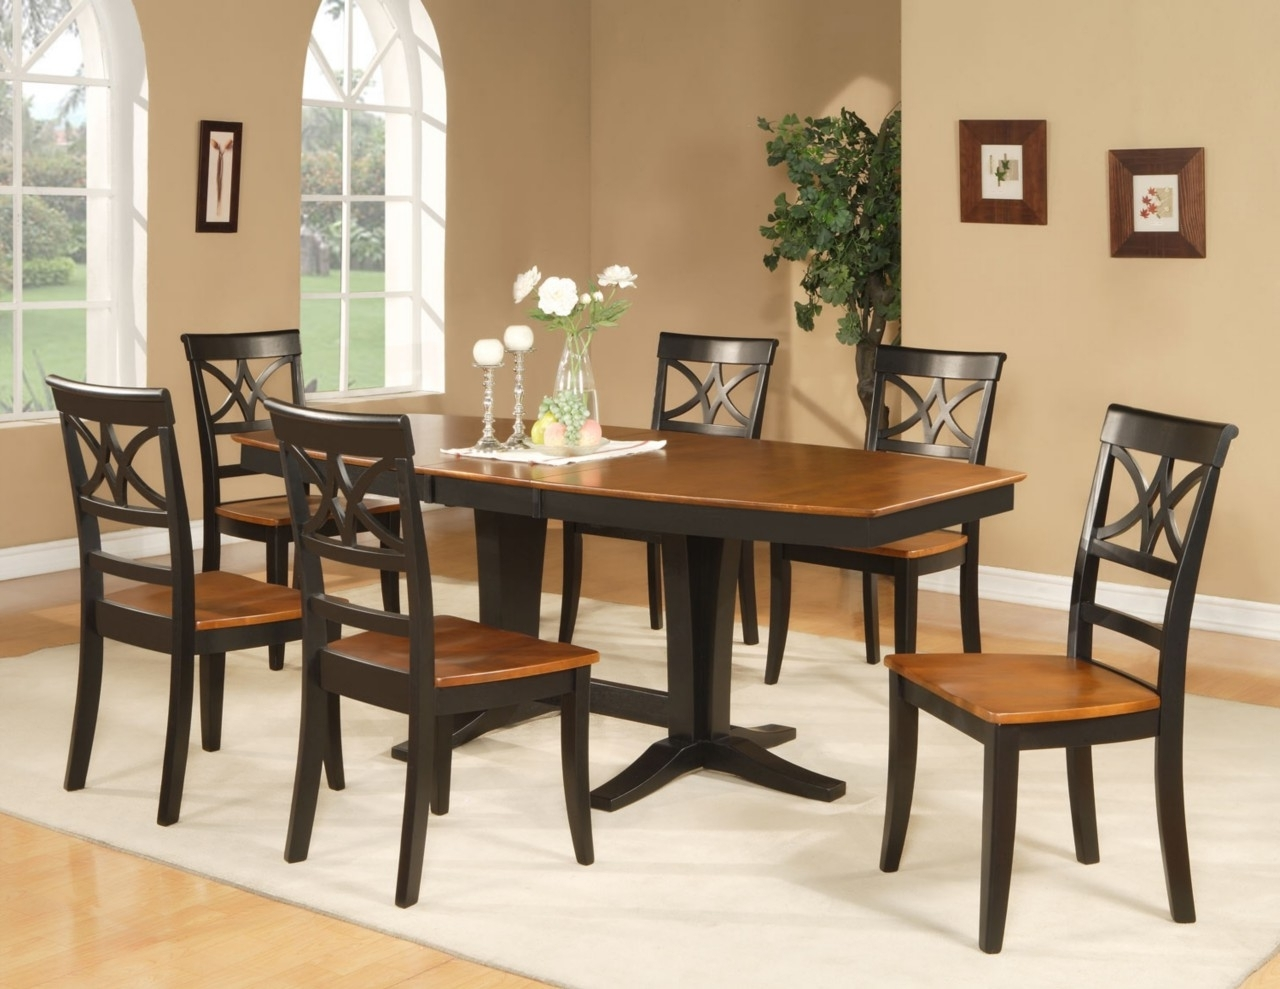 Best And Newest Extending Glass Dining Tables And 8 Chairs For Glass Top Dining Table With 8 Chairs – Glass Decorating Ideas (View 16 of 25)